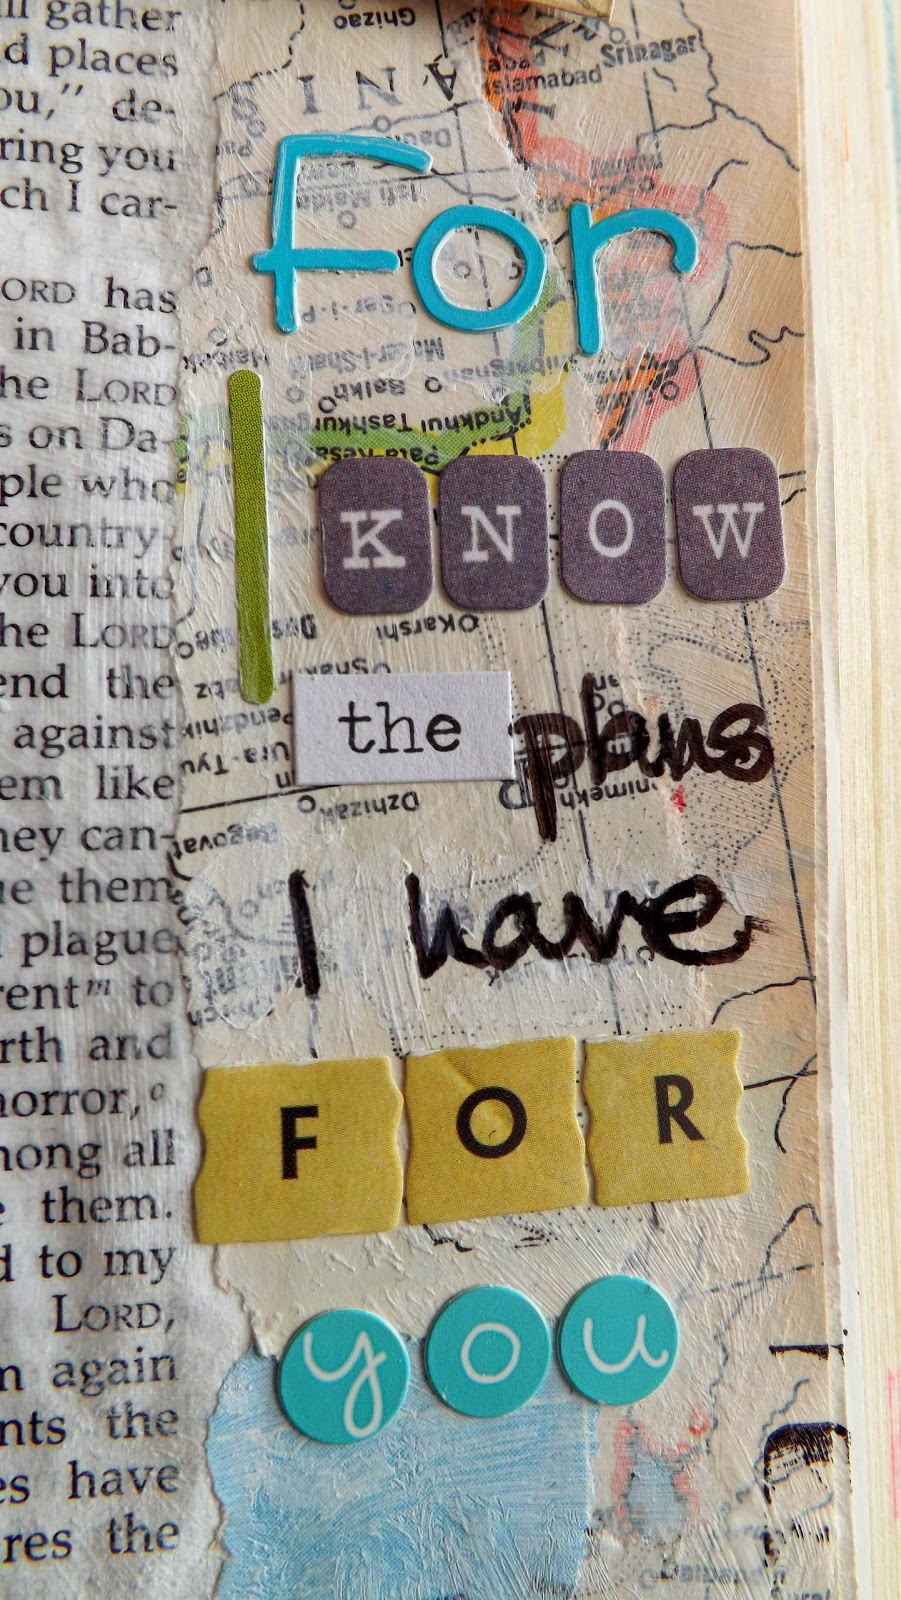 Journaling Bible art in Jeremiah 29:11 with stickers, hand lettering and gesso.